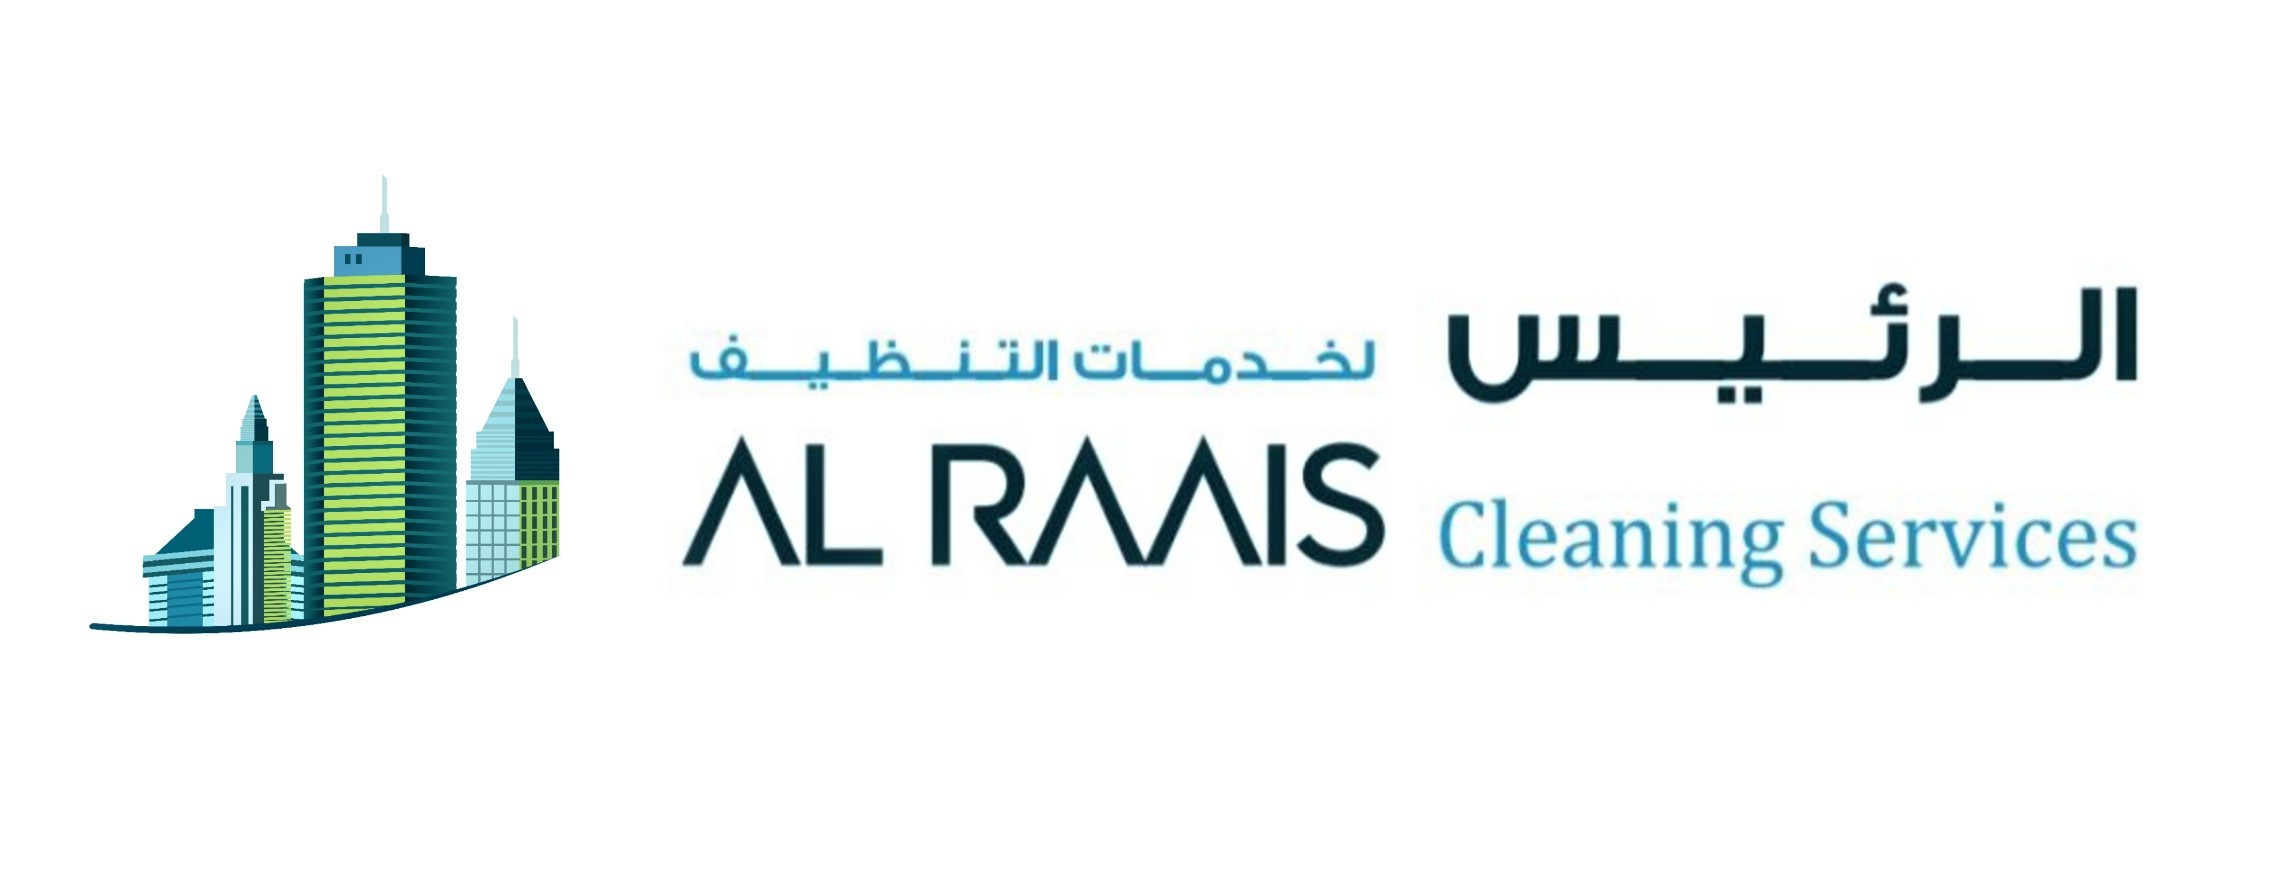 Alraais Cleaning Services